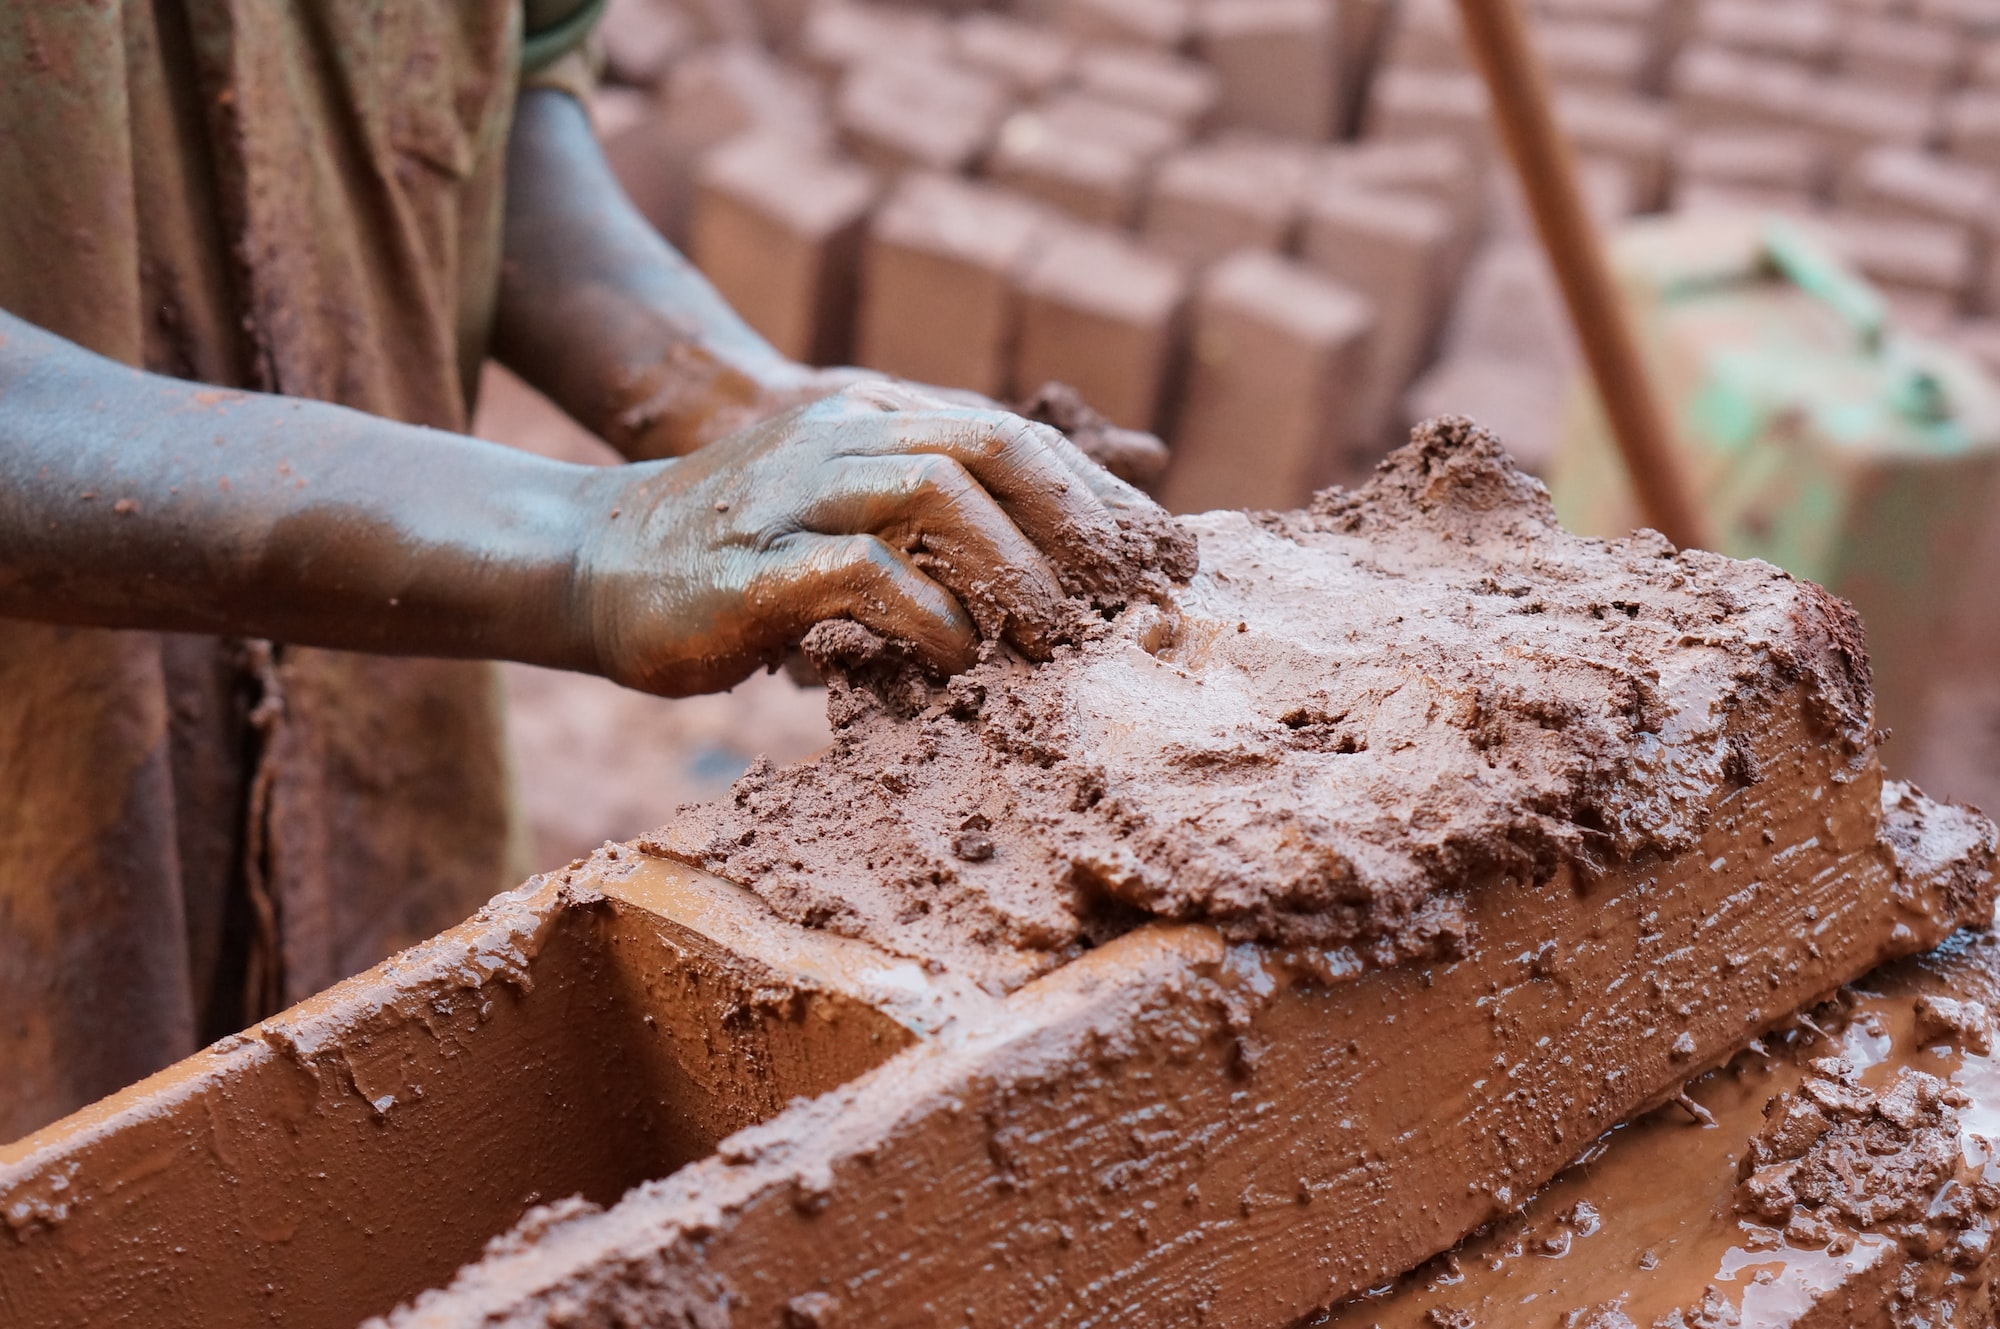 Was walking through the slums of Kampala and came across a brick maker, making clay bricks by hand. For more, visit esteban-castle.com or IG: @estebancastle_media